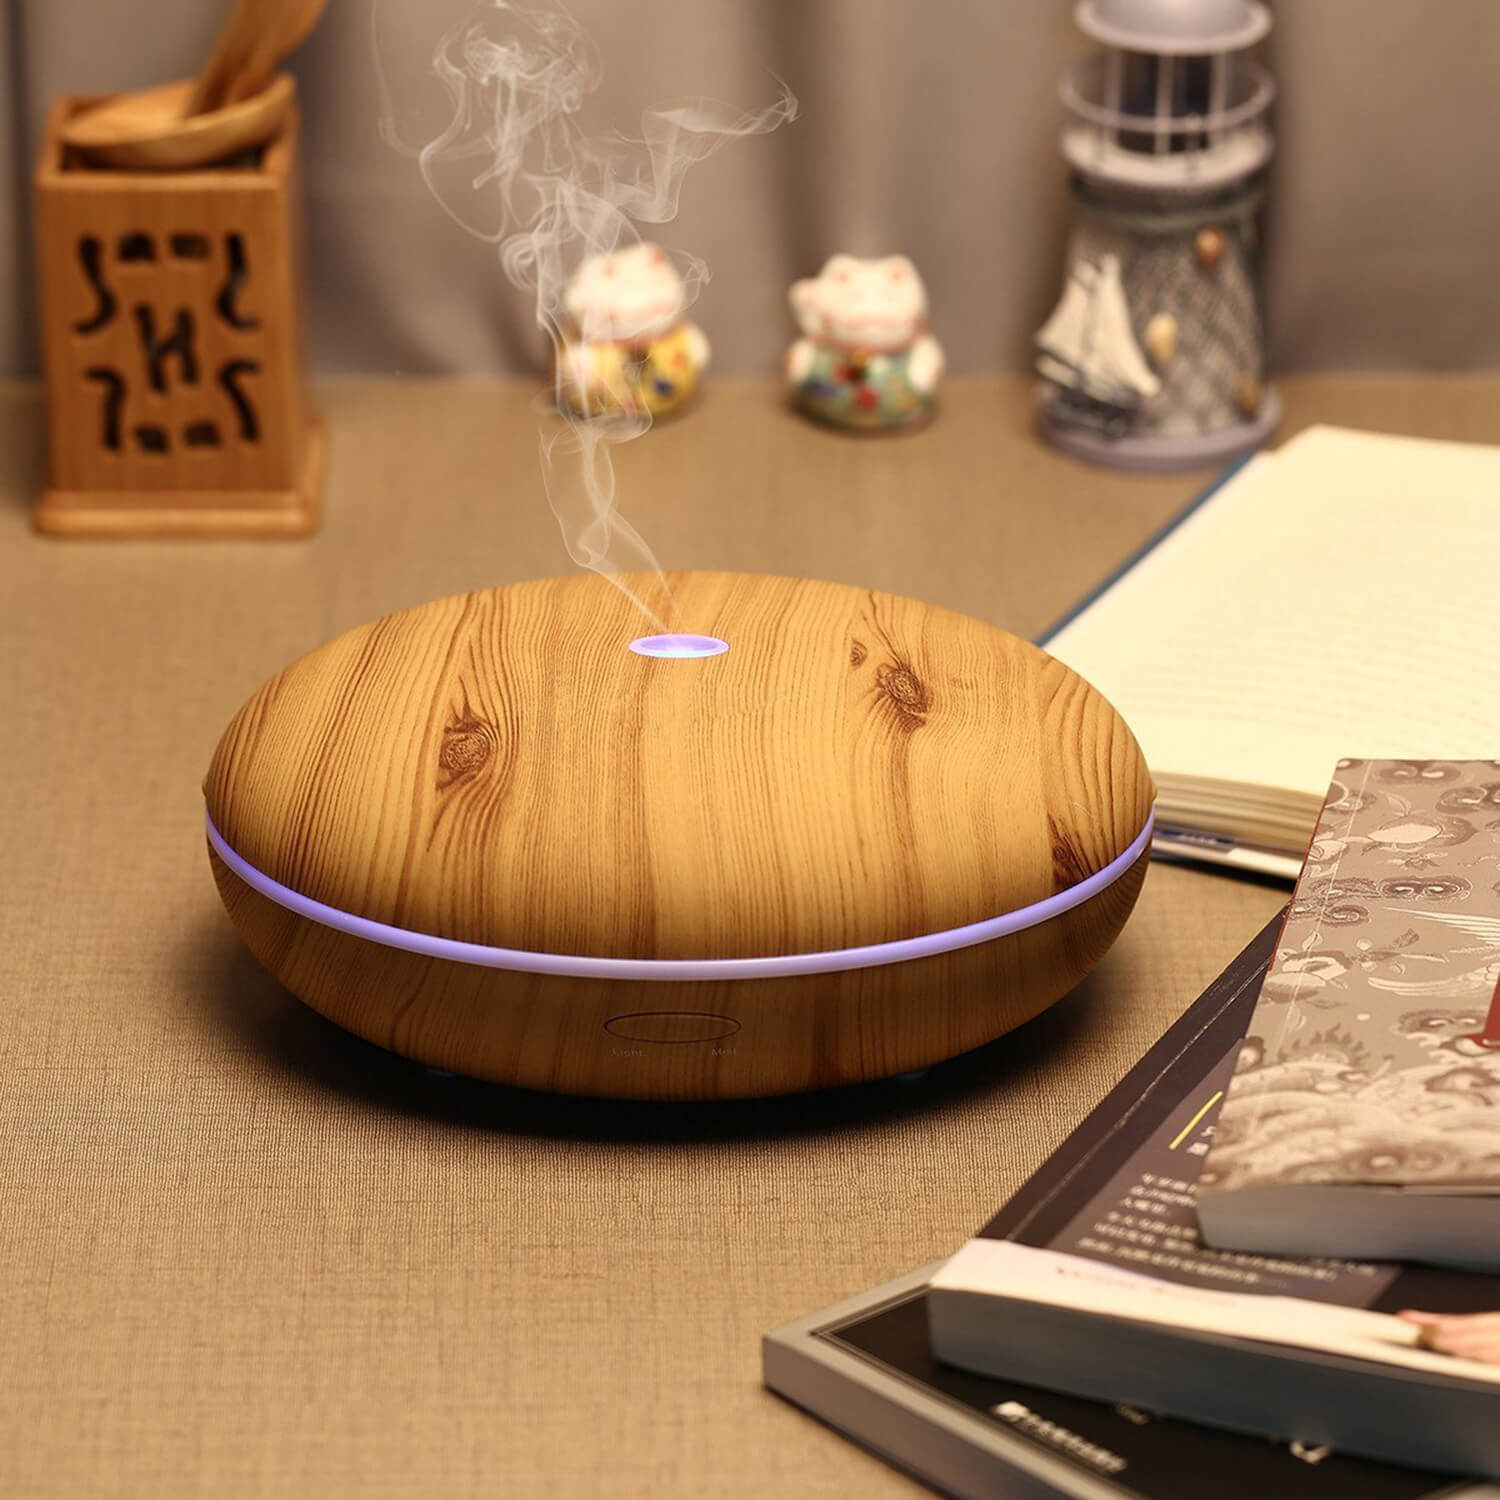 400mL Wood Grian Aroma Diffuser Mini Humidifier